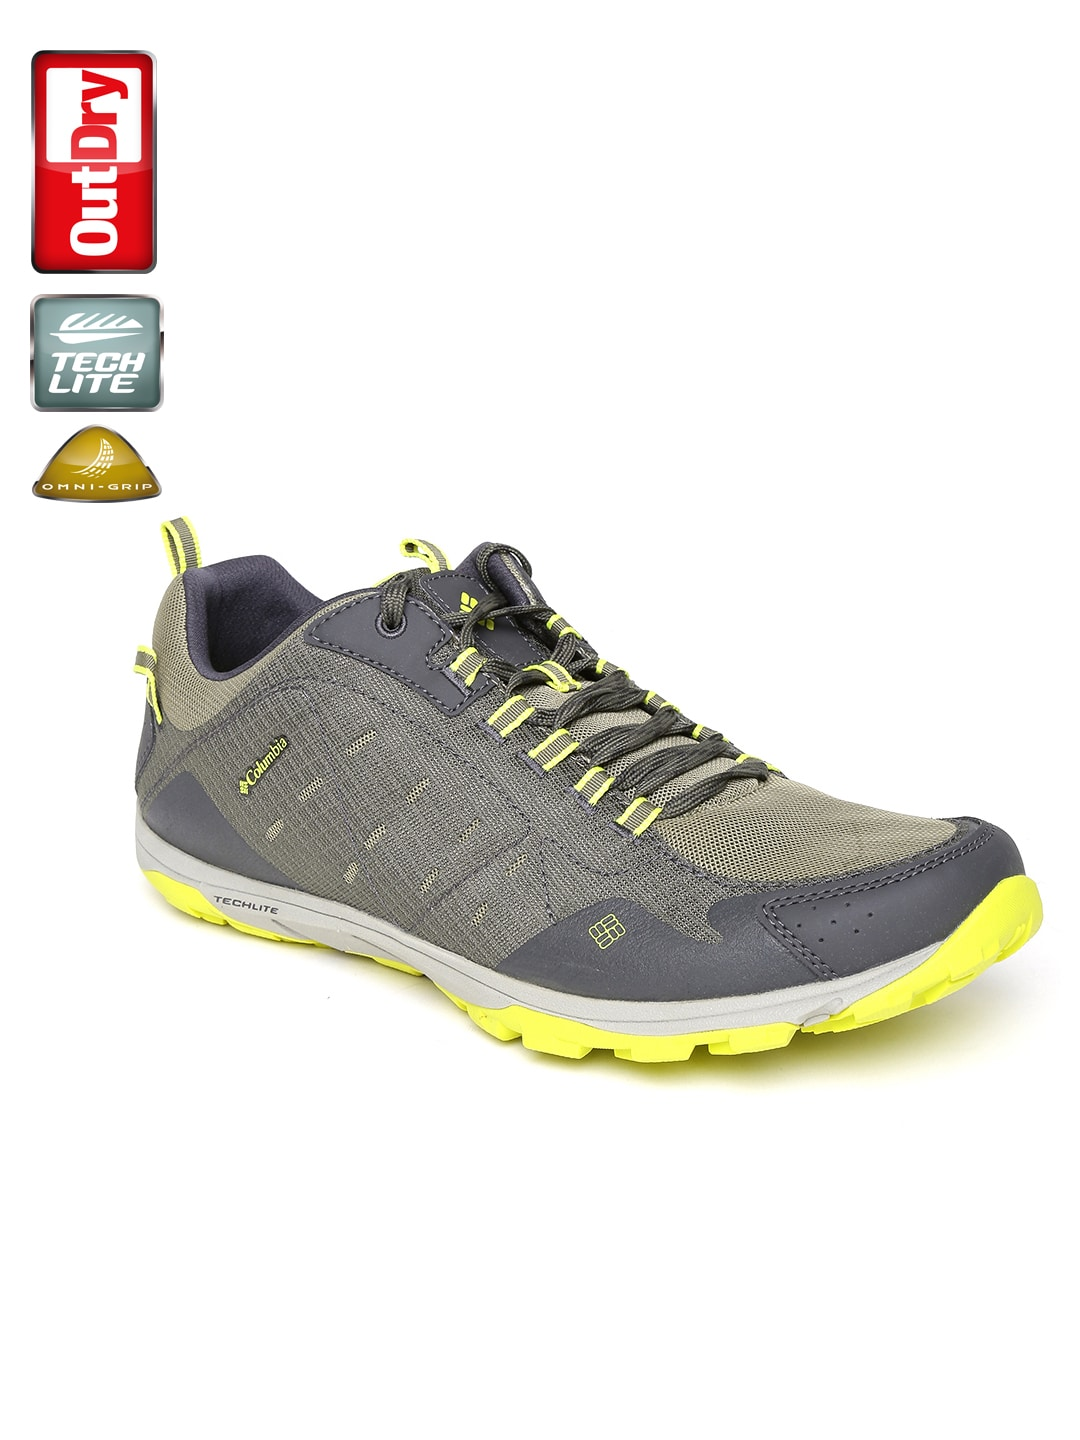 6a112dc6535b0 Men Running Shoes - Buy Men Running Shoes Online in India